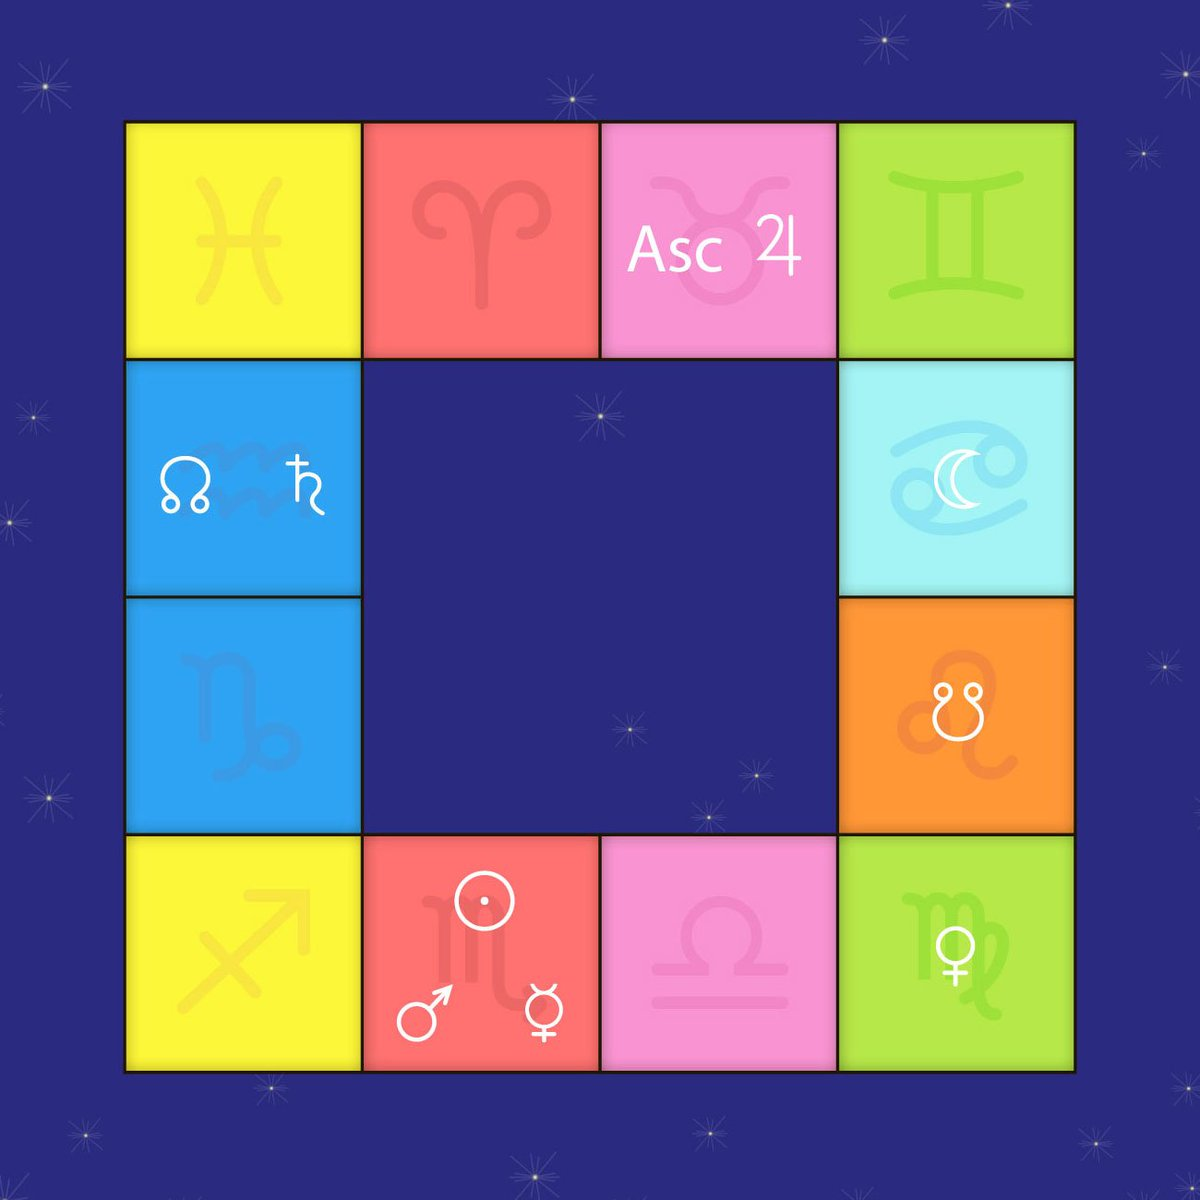 Chris Brennan Di Twitter I Really Appreciate The Simplicity Of The South Indian Astrology Chart Style Where The Signs Of The Zodiac Stay Fixed In Their Positions Around The Square And You